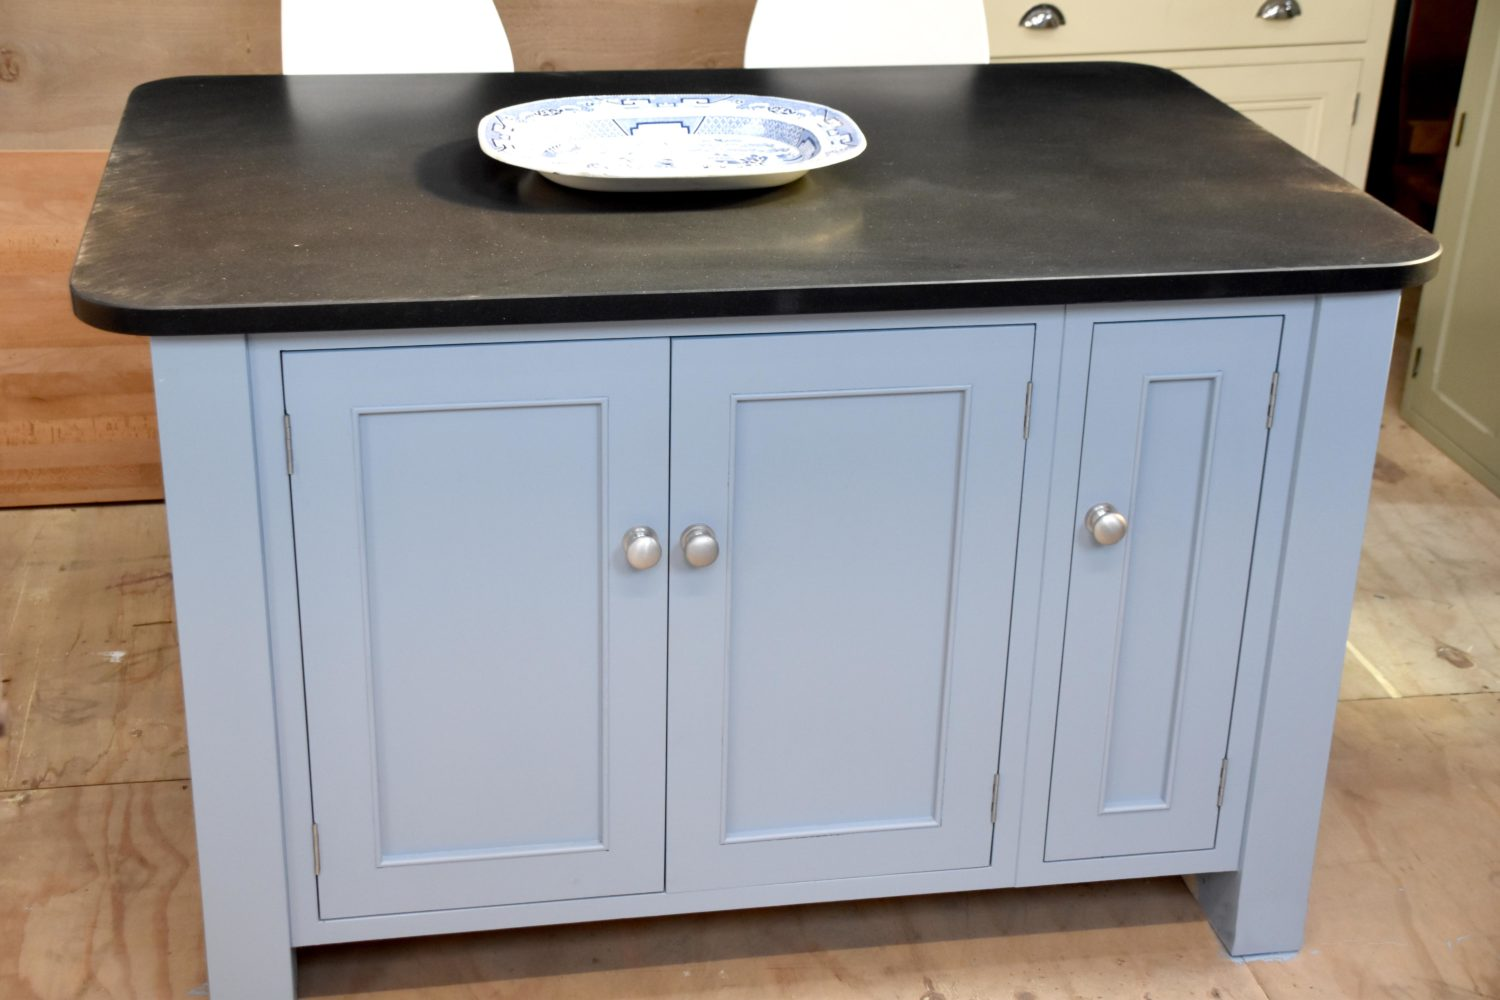 Granite Top Island in the Mudd & Co factory sale 2020. Handcrafted kitchen and home furniture